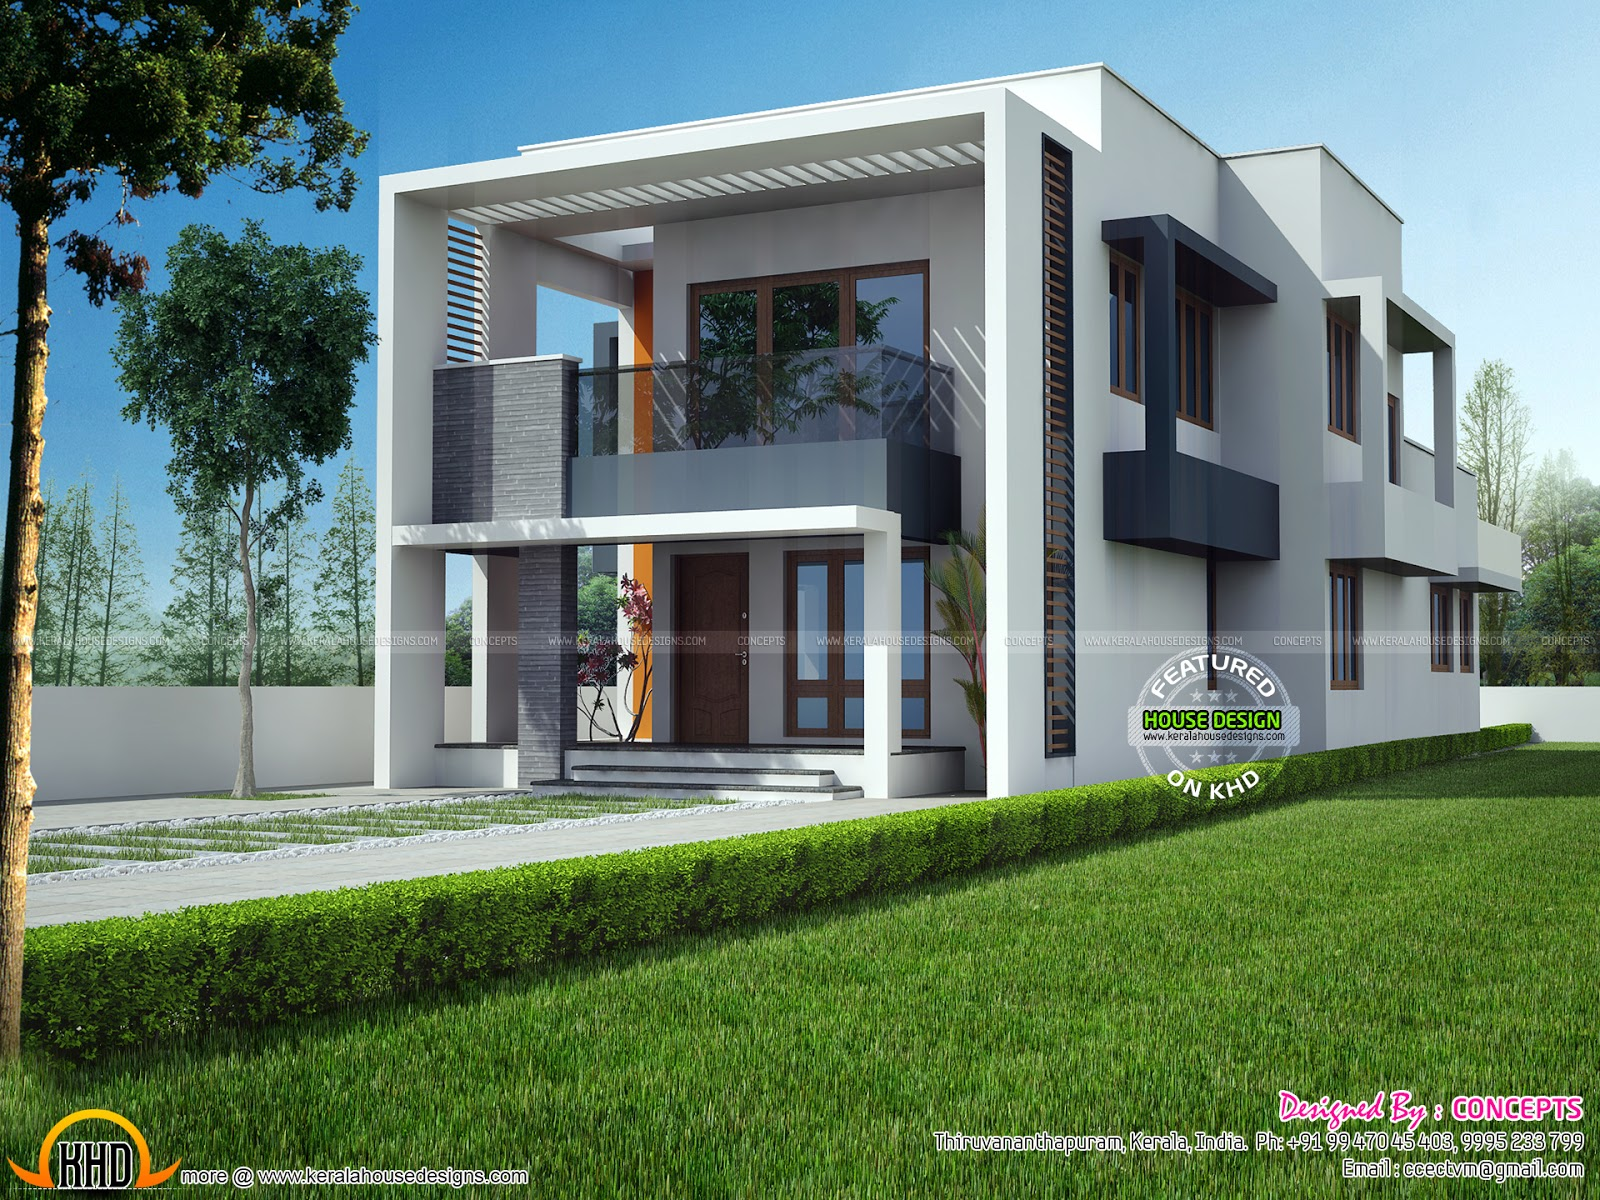 Floor Plan Available Of This 2000 Sq ft Home Kerala